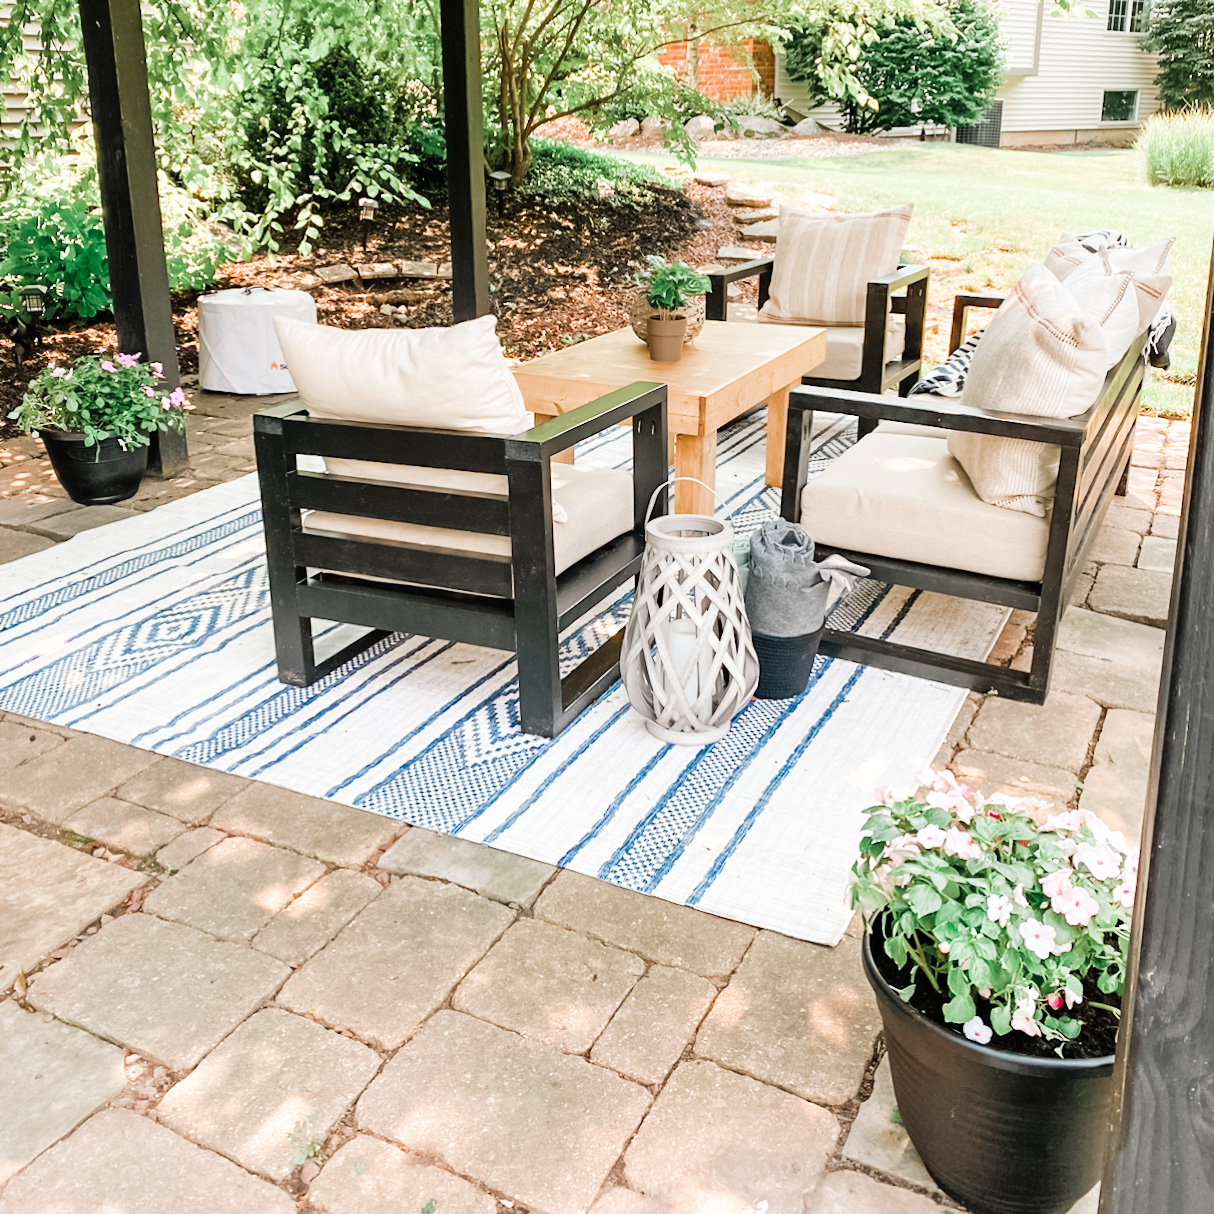 Pergola space with outdoor furniture and new planters